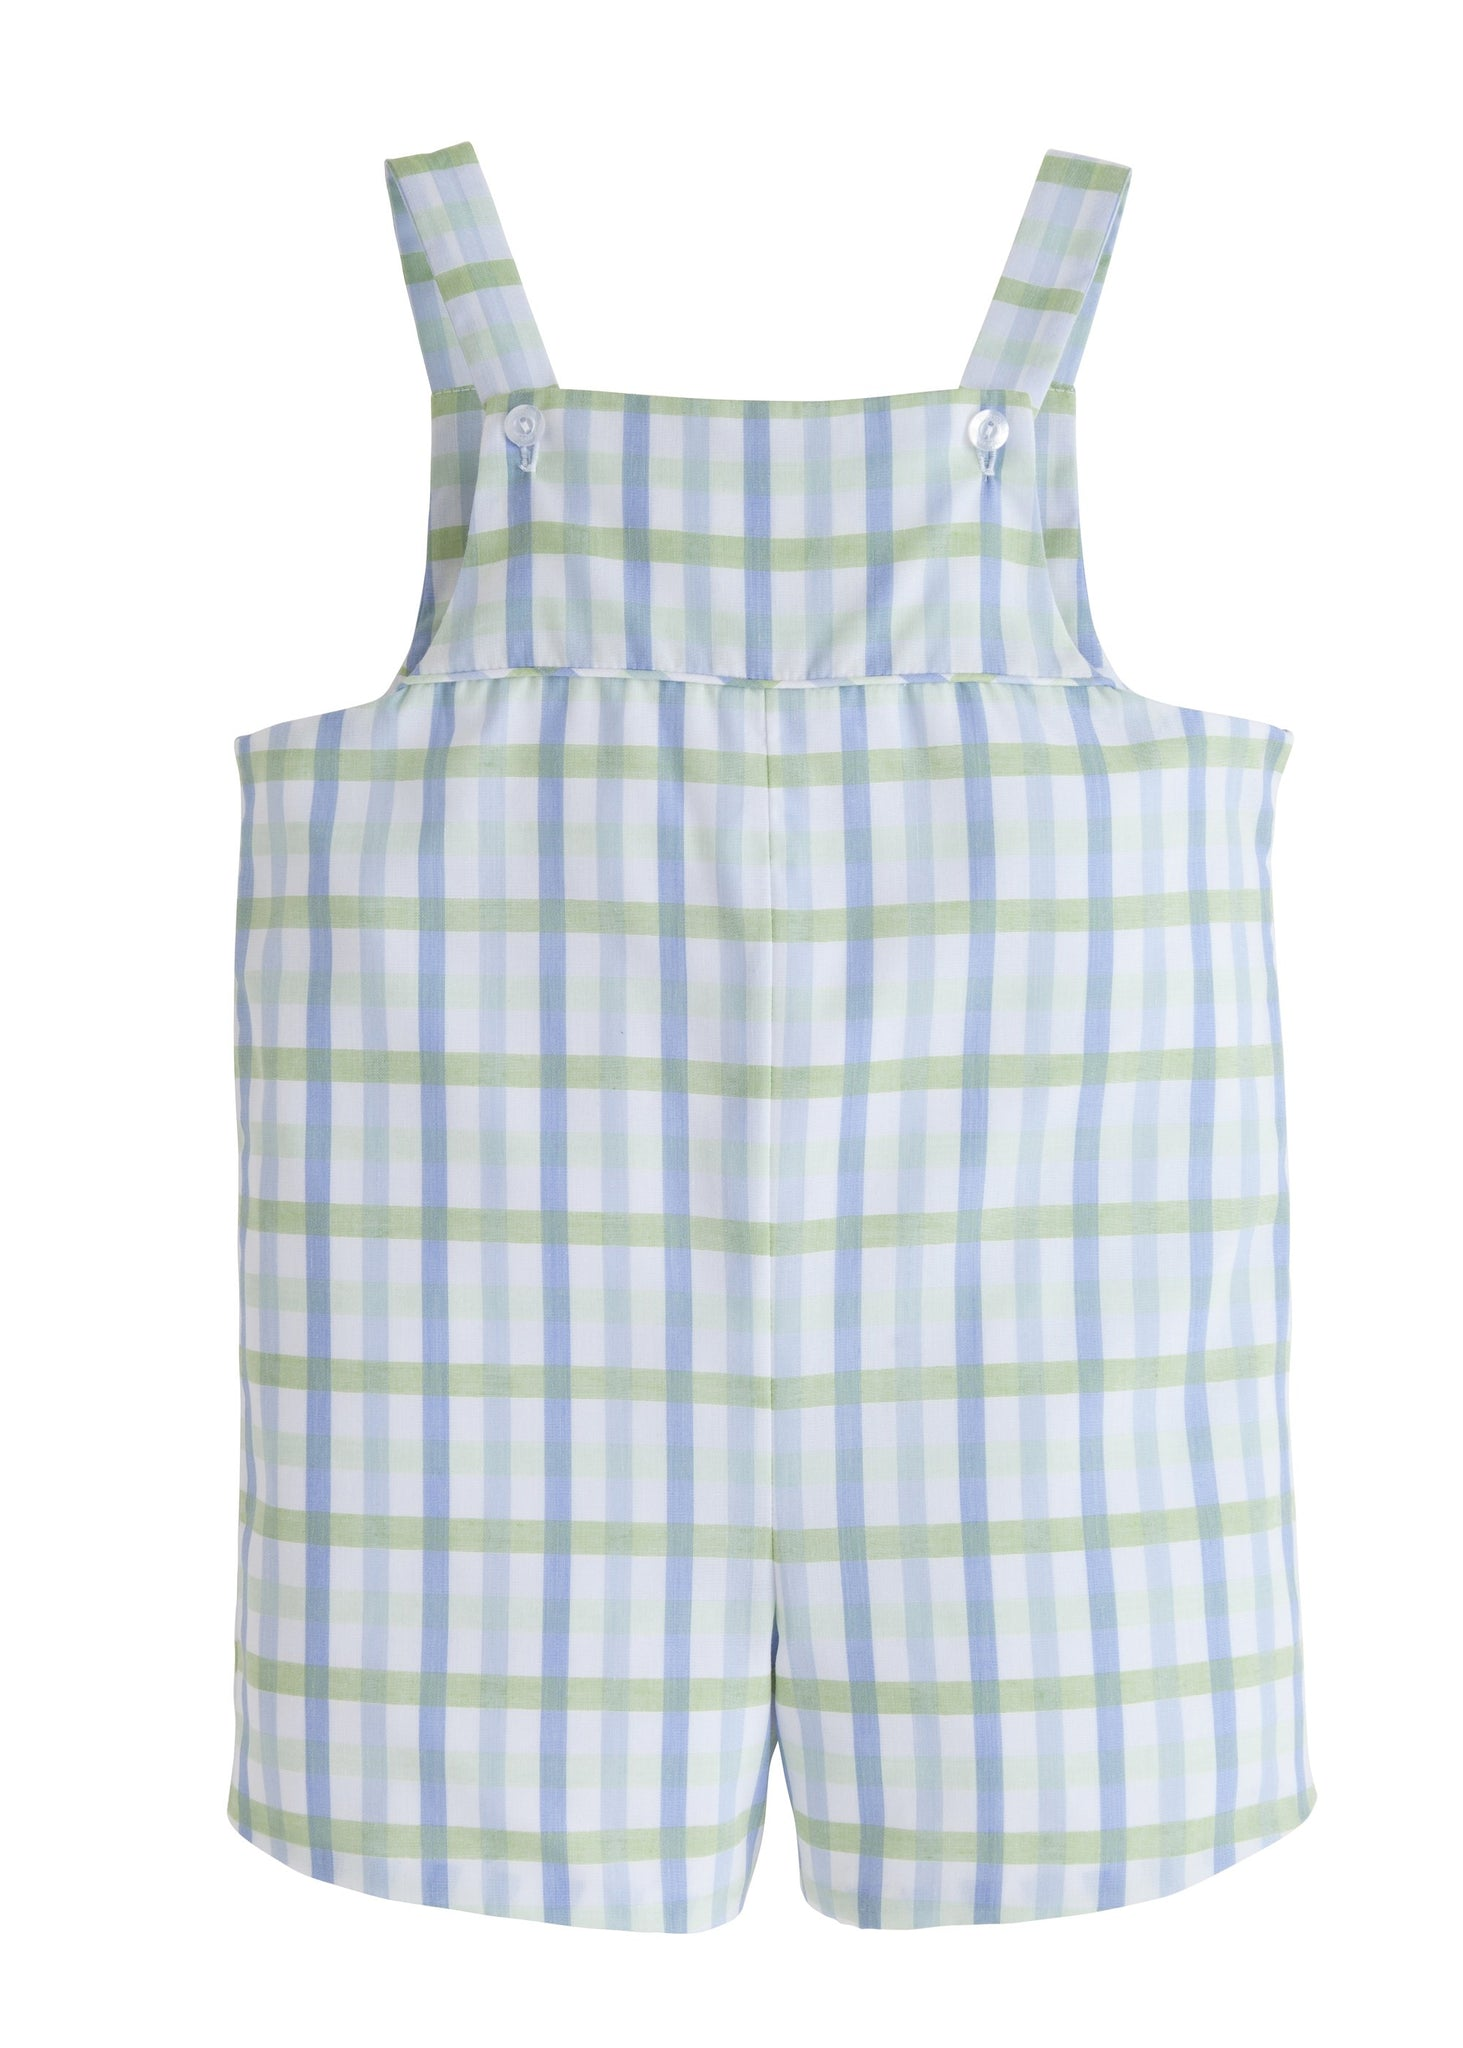 Vintage Check Hampton Shortall - Noa & Vivi Kids Apparel